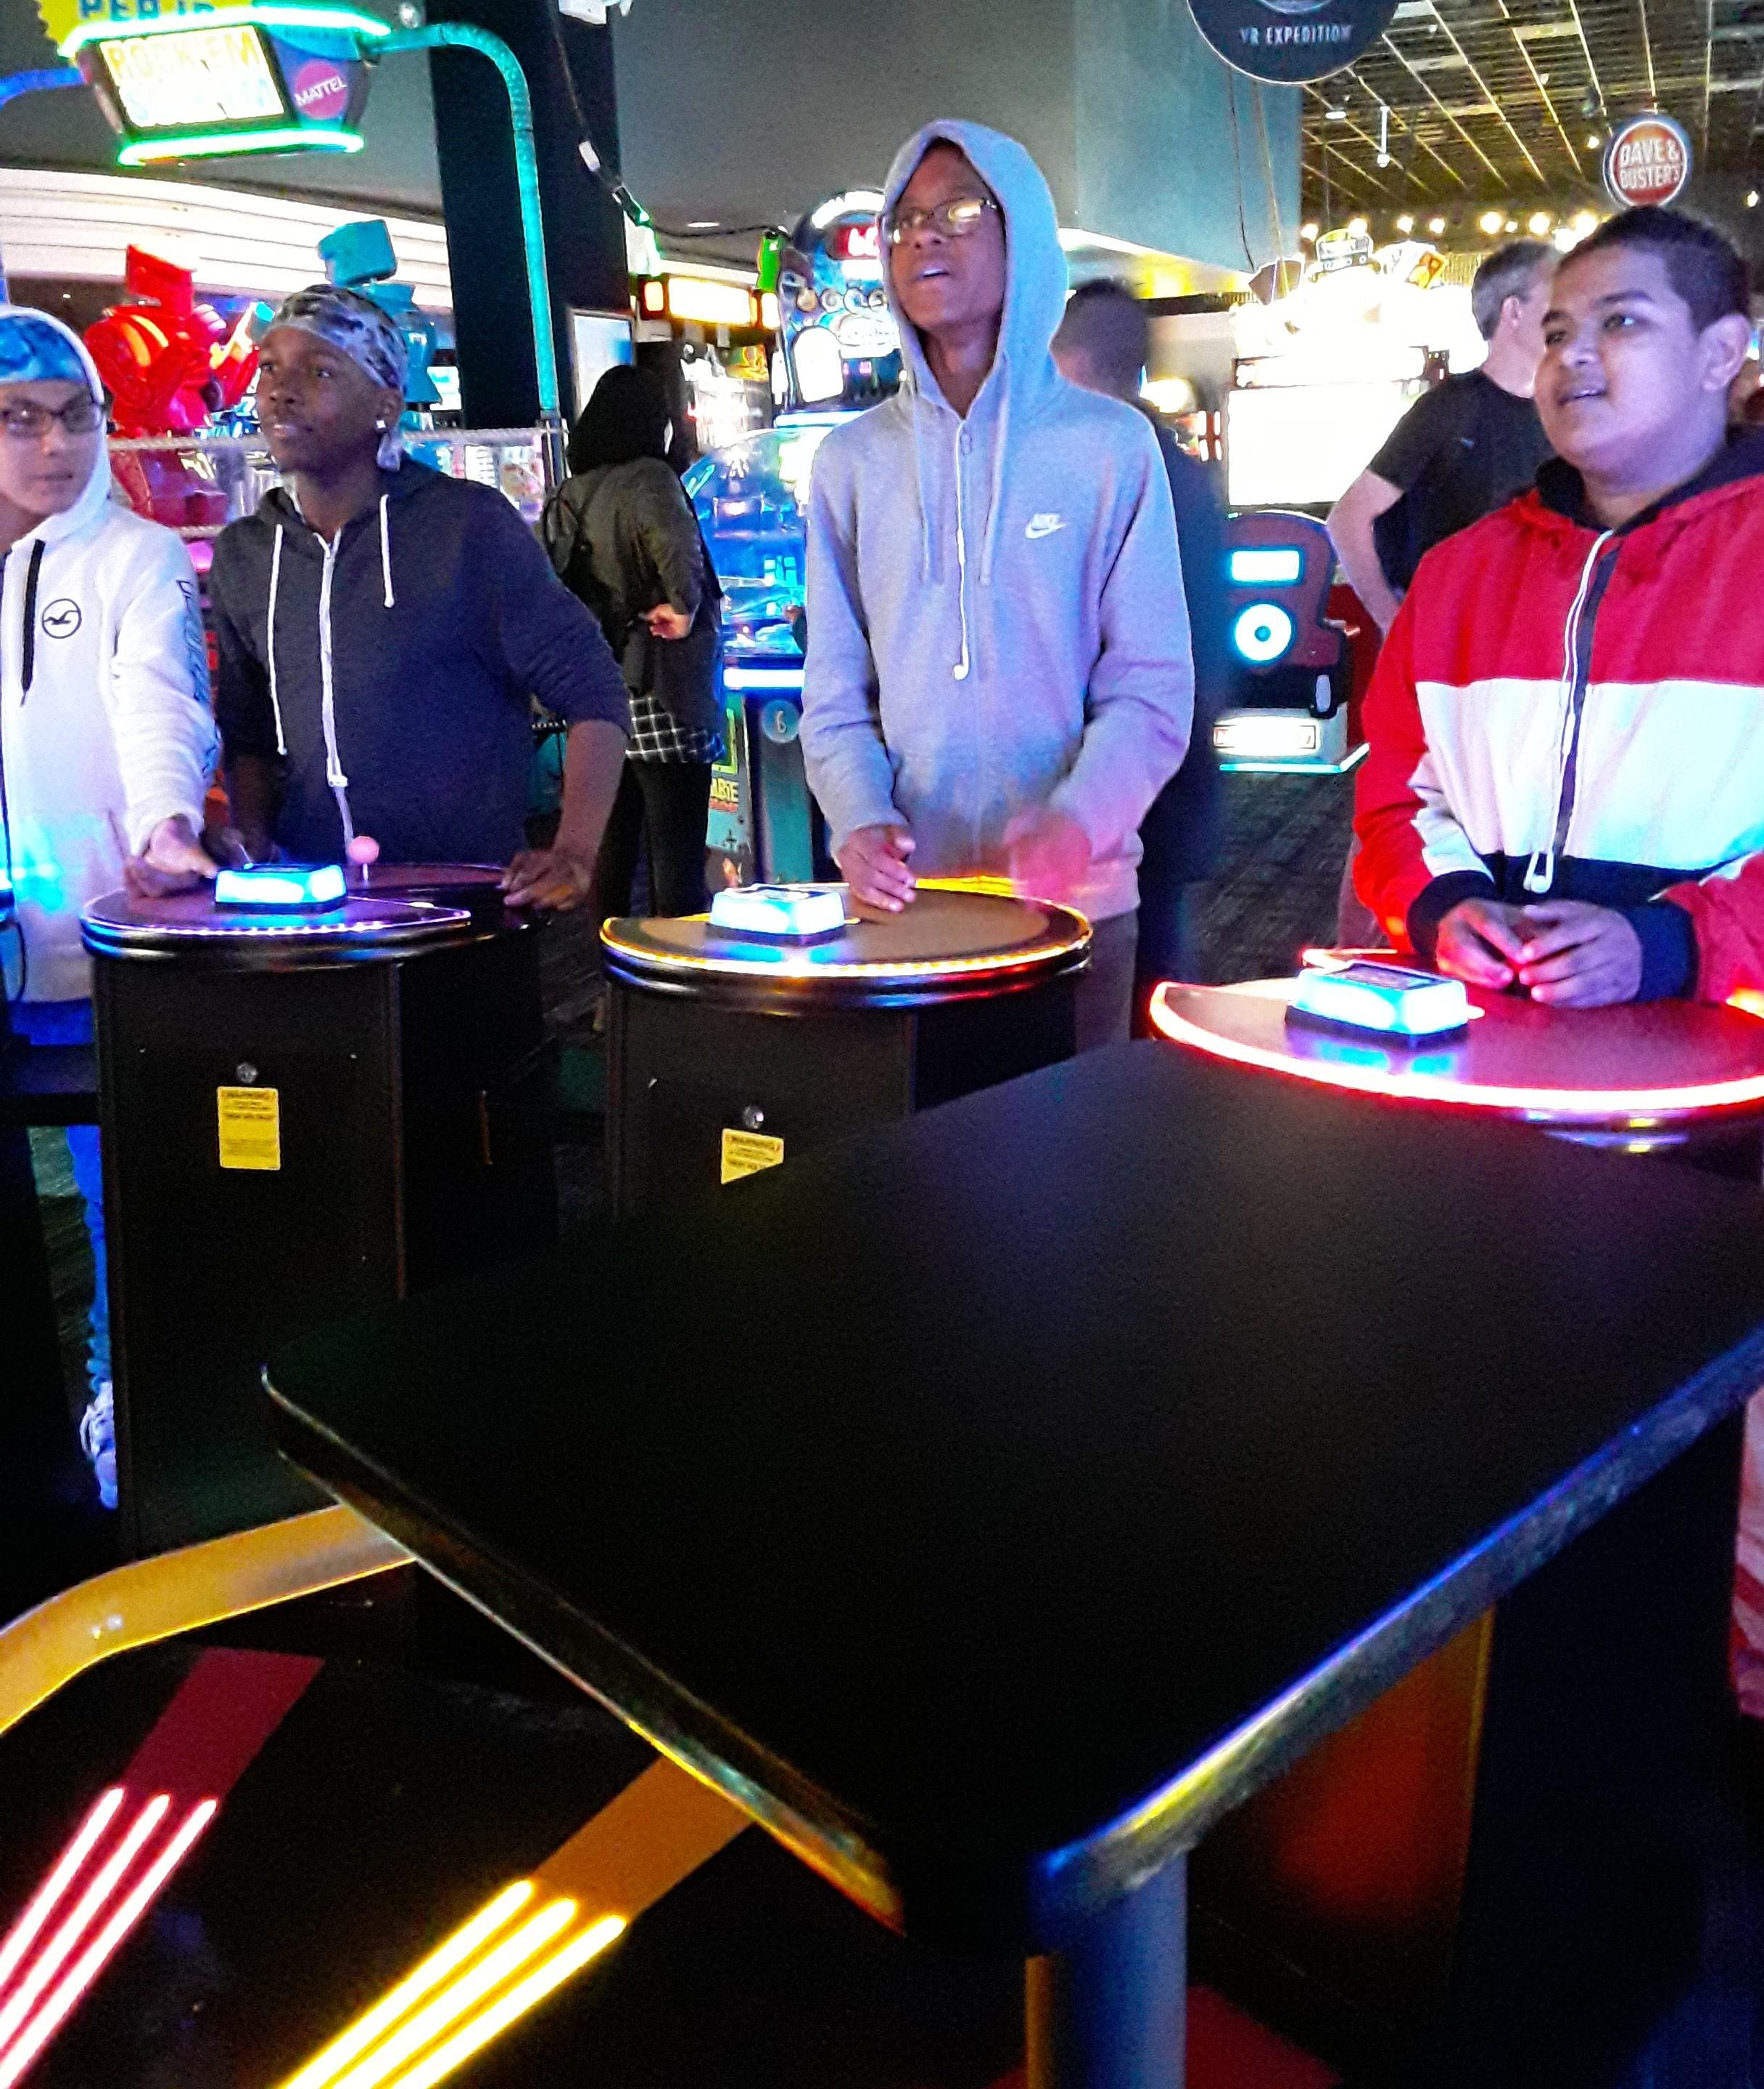 Trip to Dave and Busters